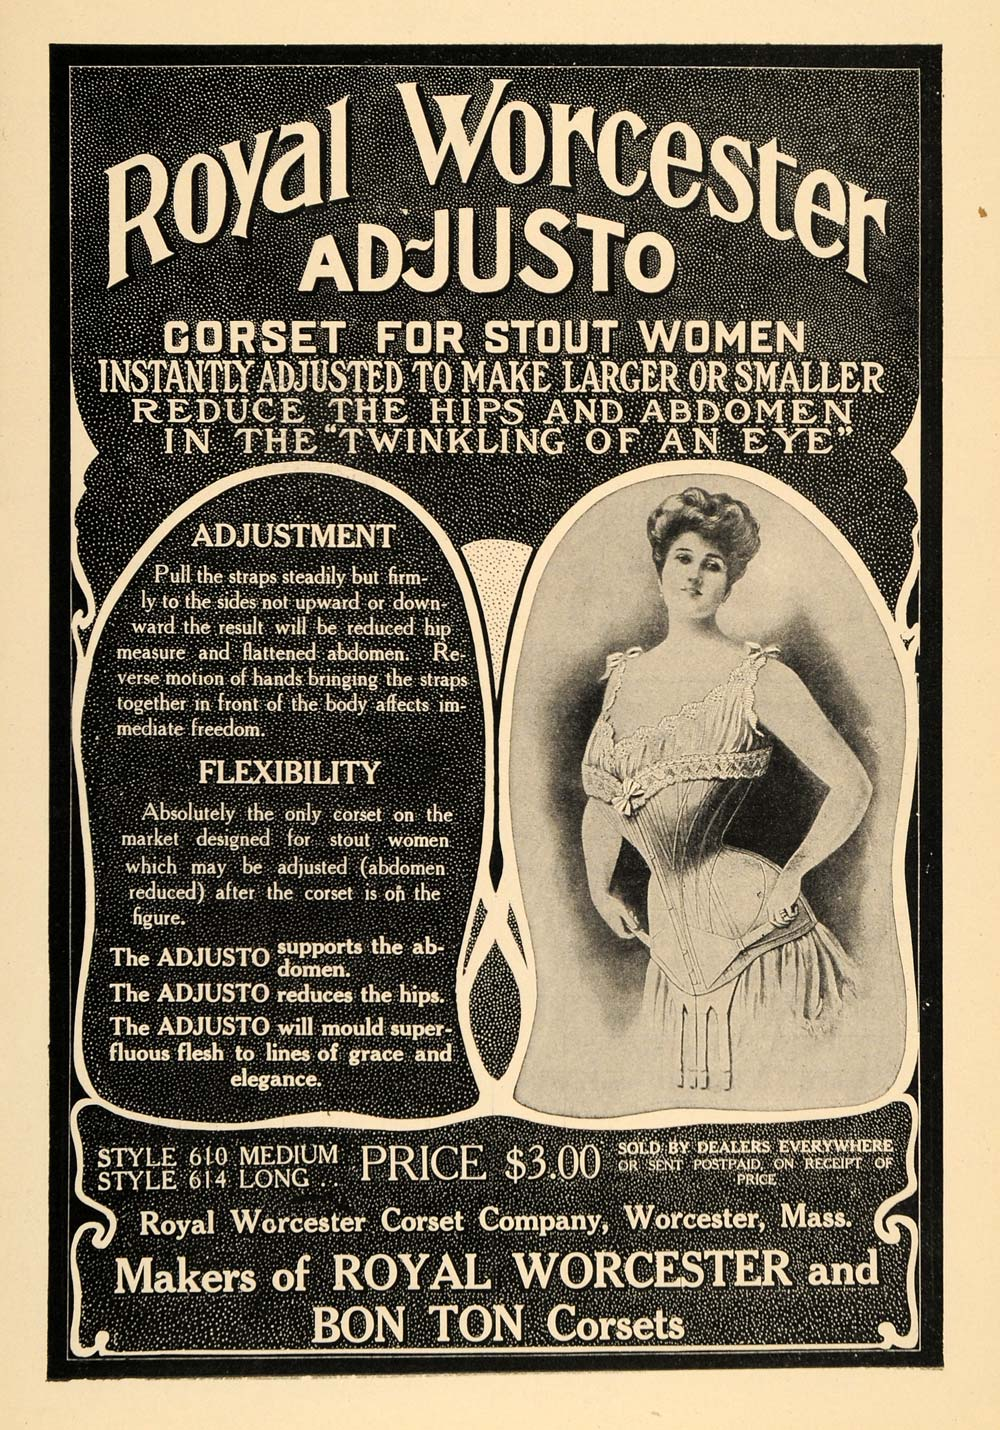 1907 Ad Royal Worcester Corset Ad-Justo For Stout Women - ORIGINAL TIN1